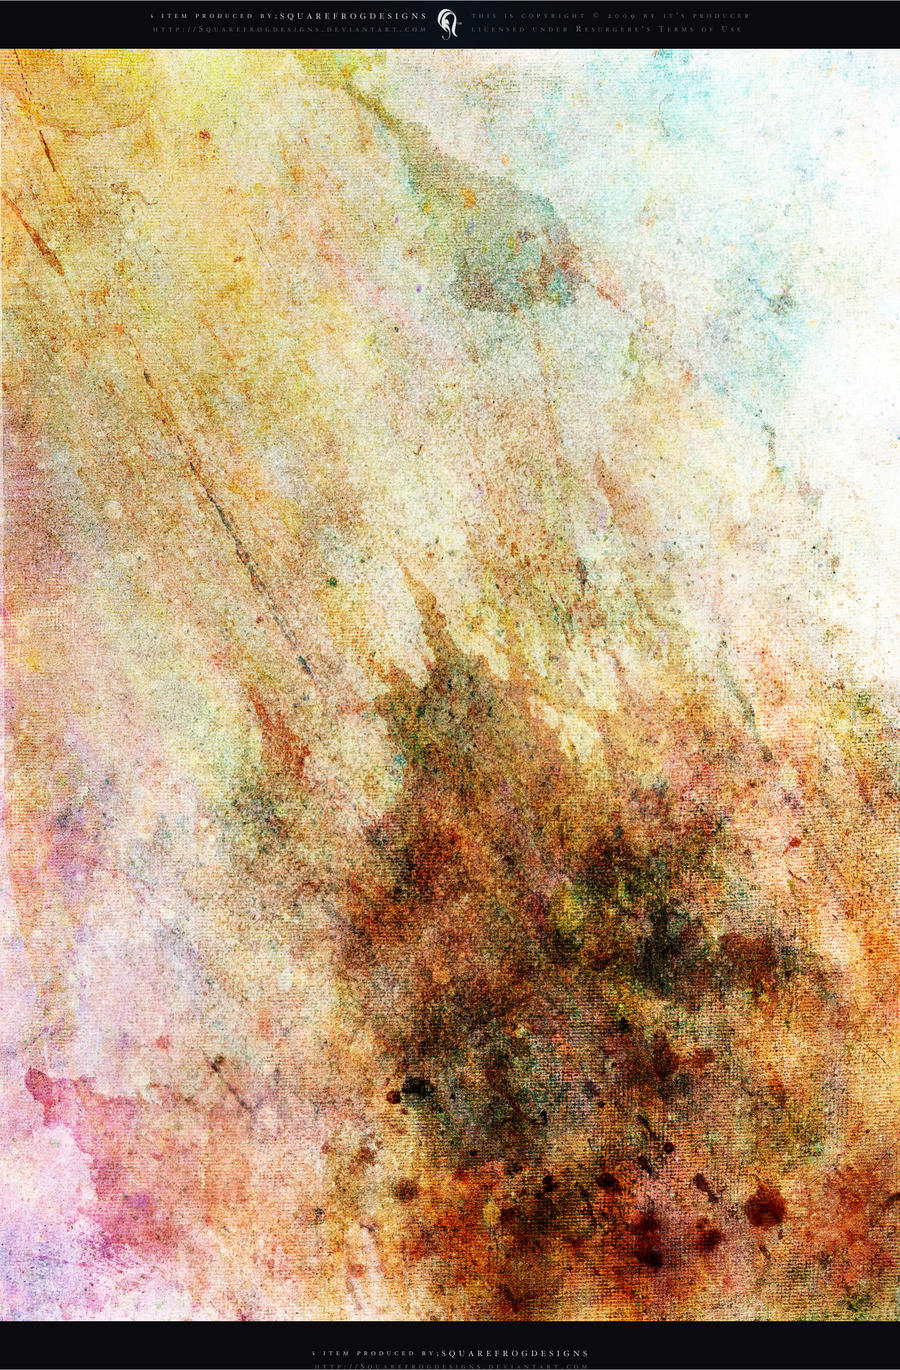 Painted Grunge Texture by resurgere